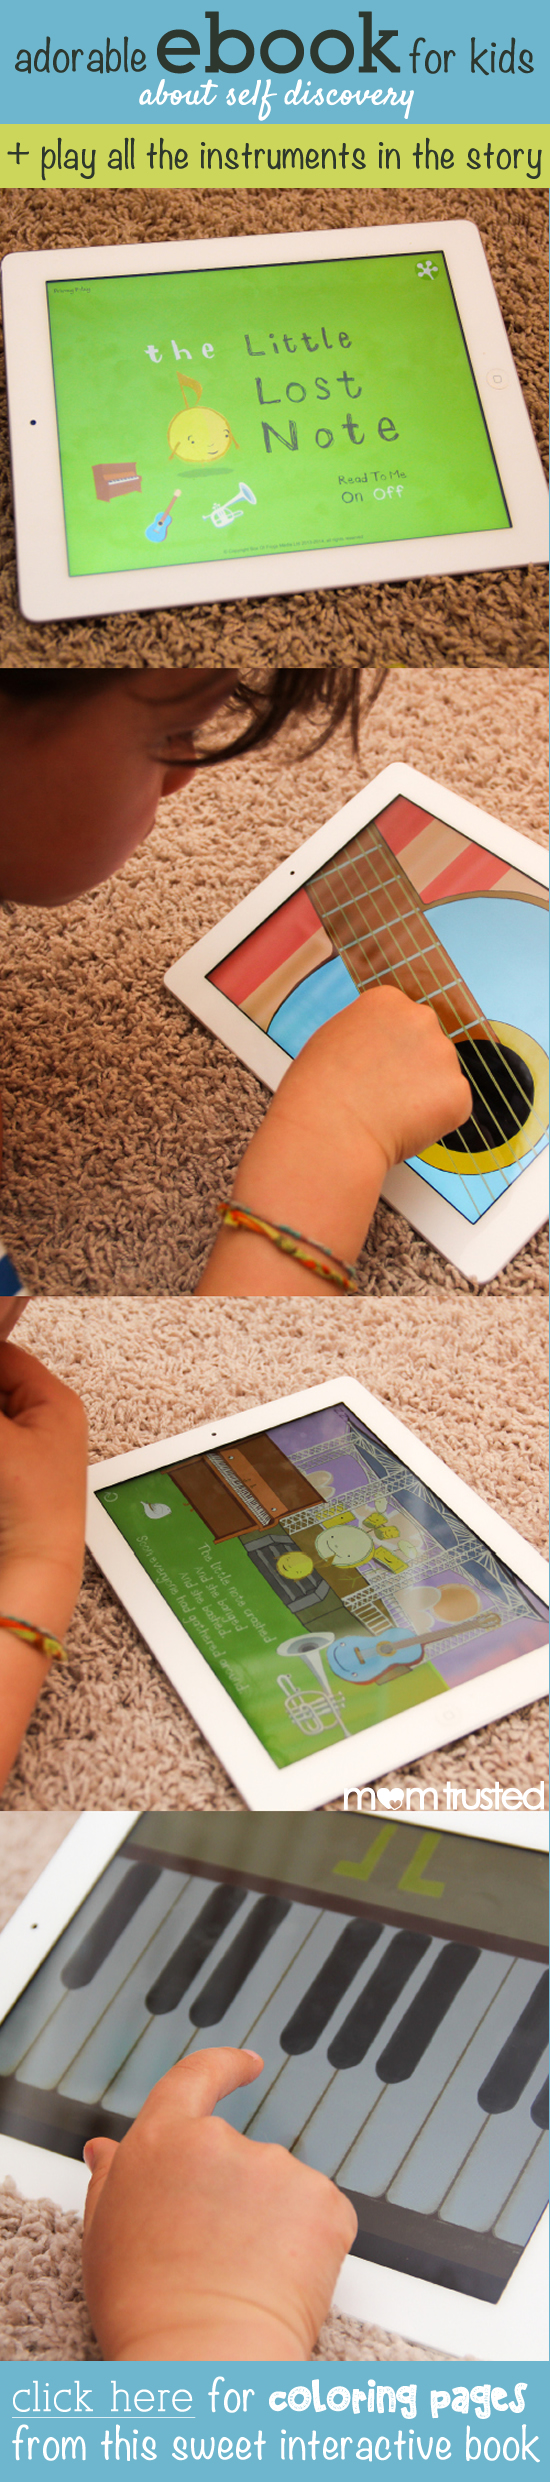 the little lost note childrens ebook musical instrument app